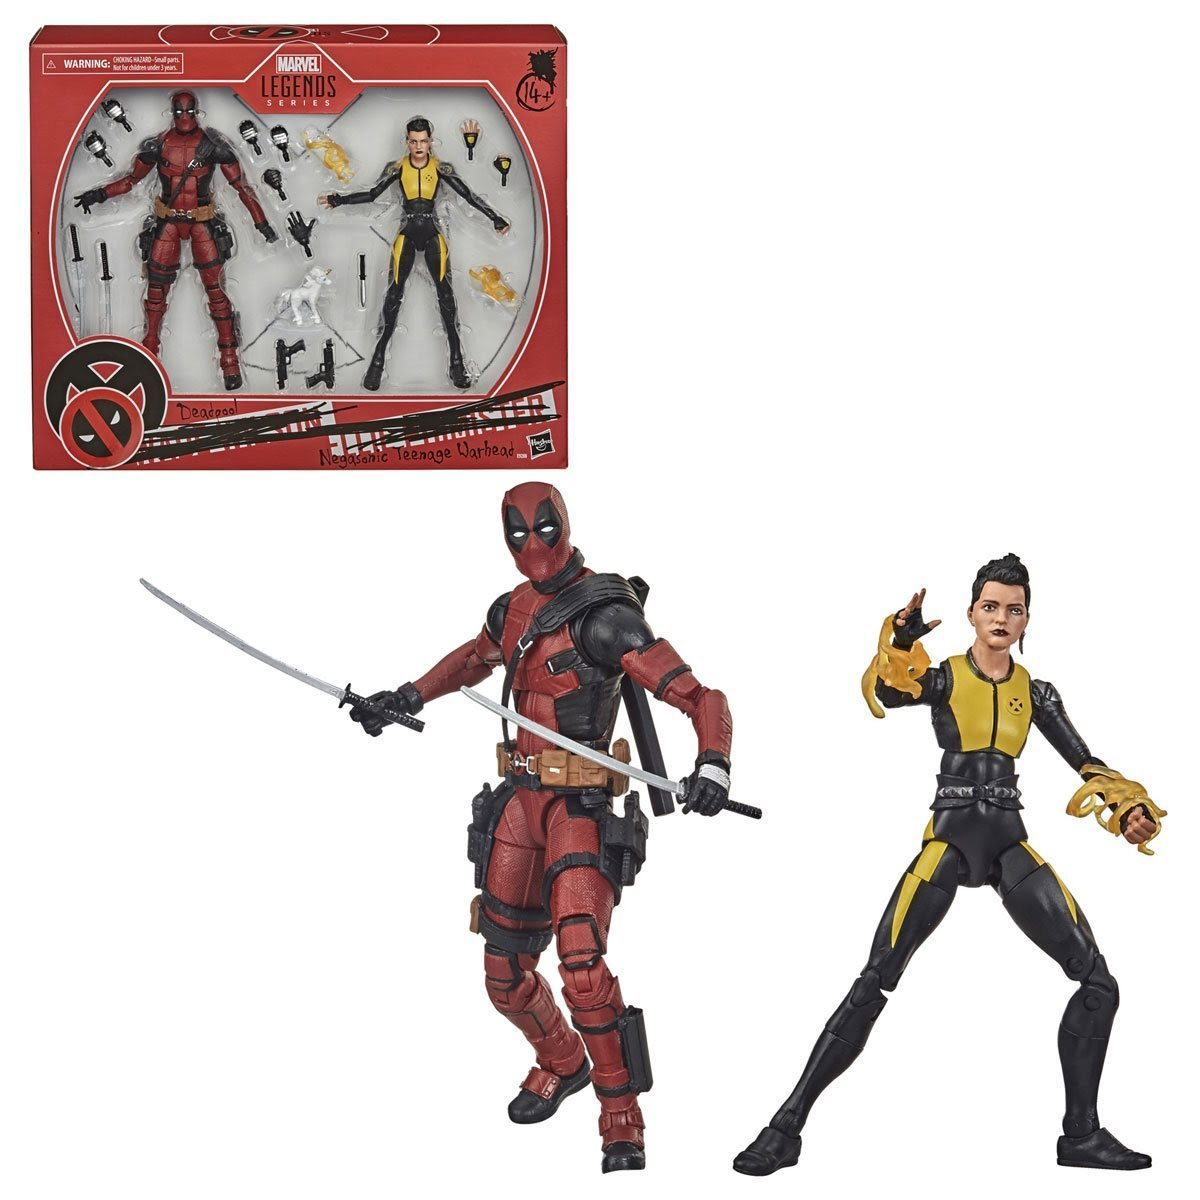 Deadpool and Negasonic 2-pack 6 inch action figures